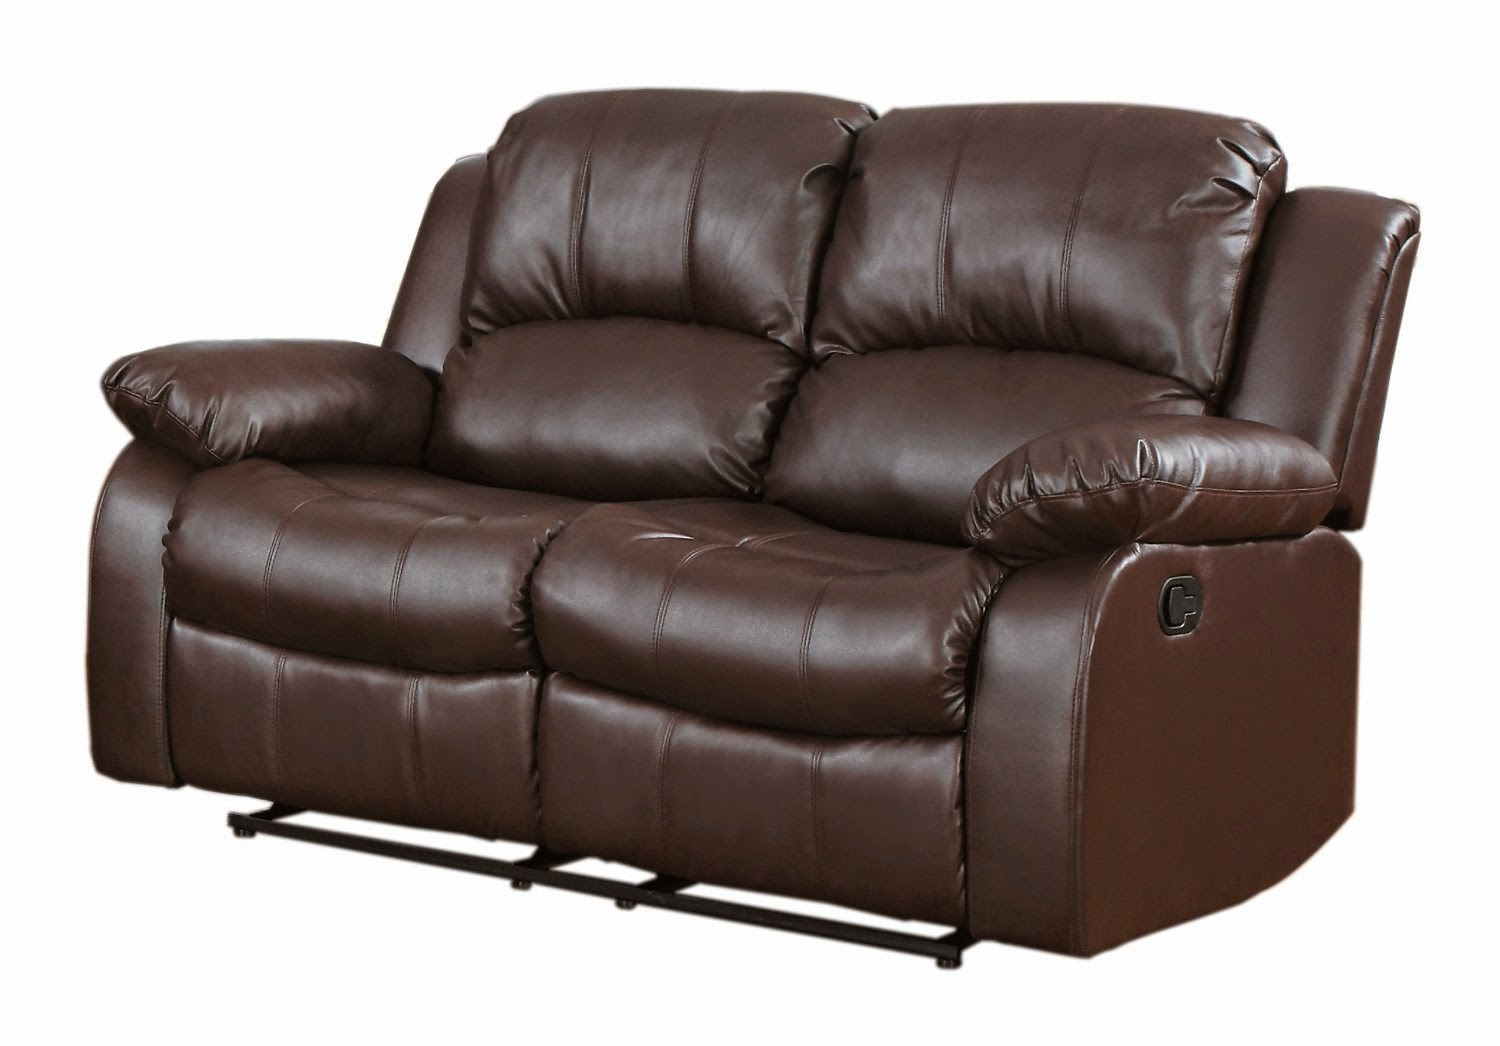 2 piece brown leather sofa small childrens couch and loveseat